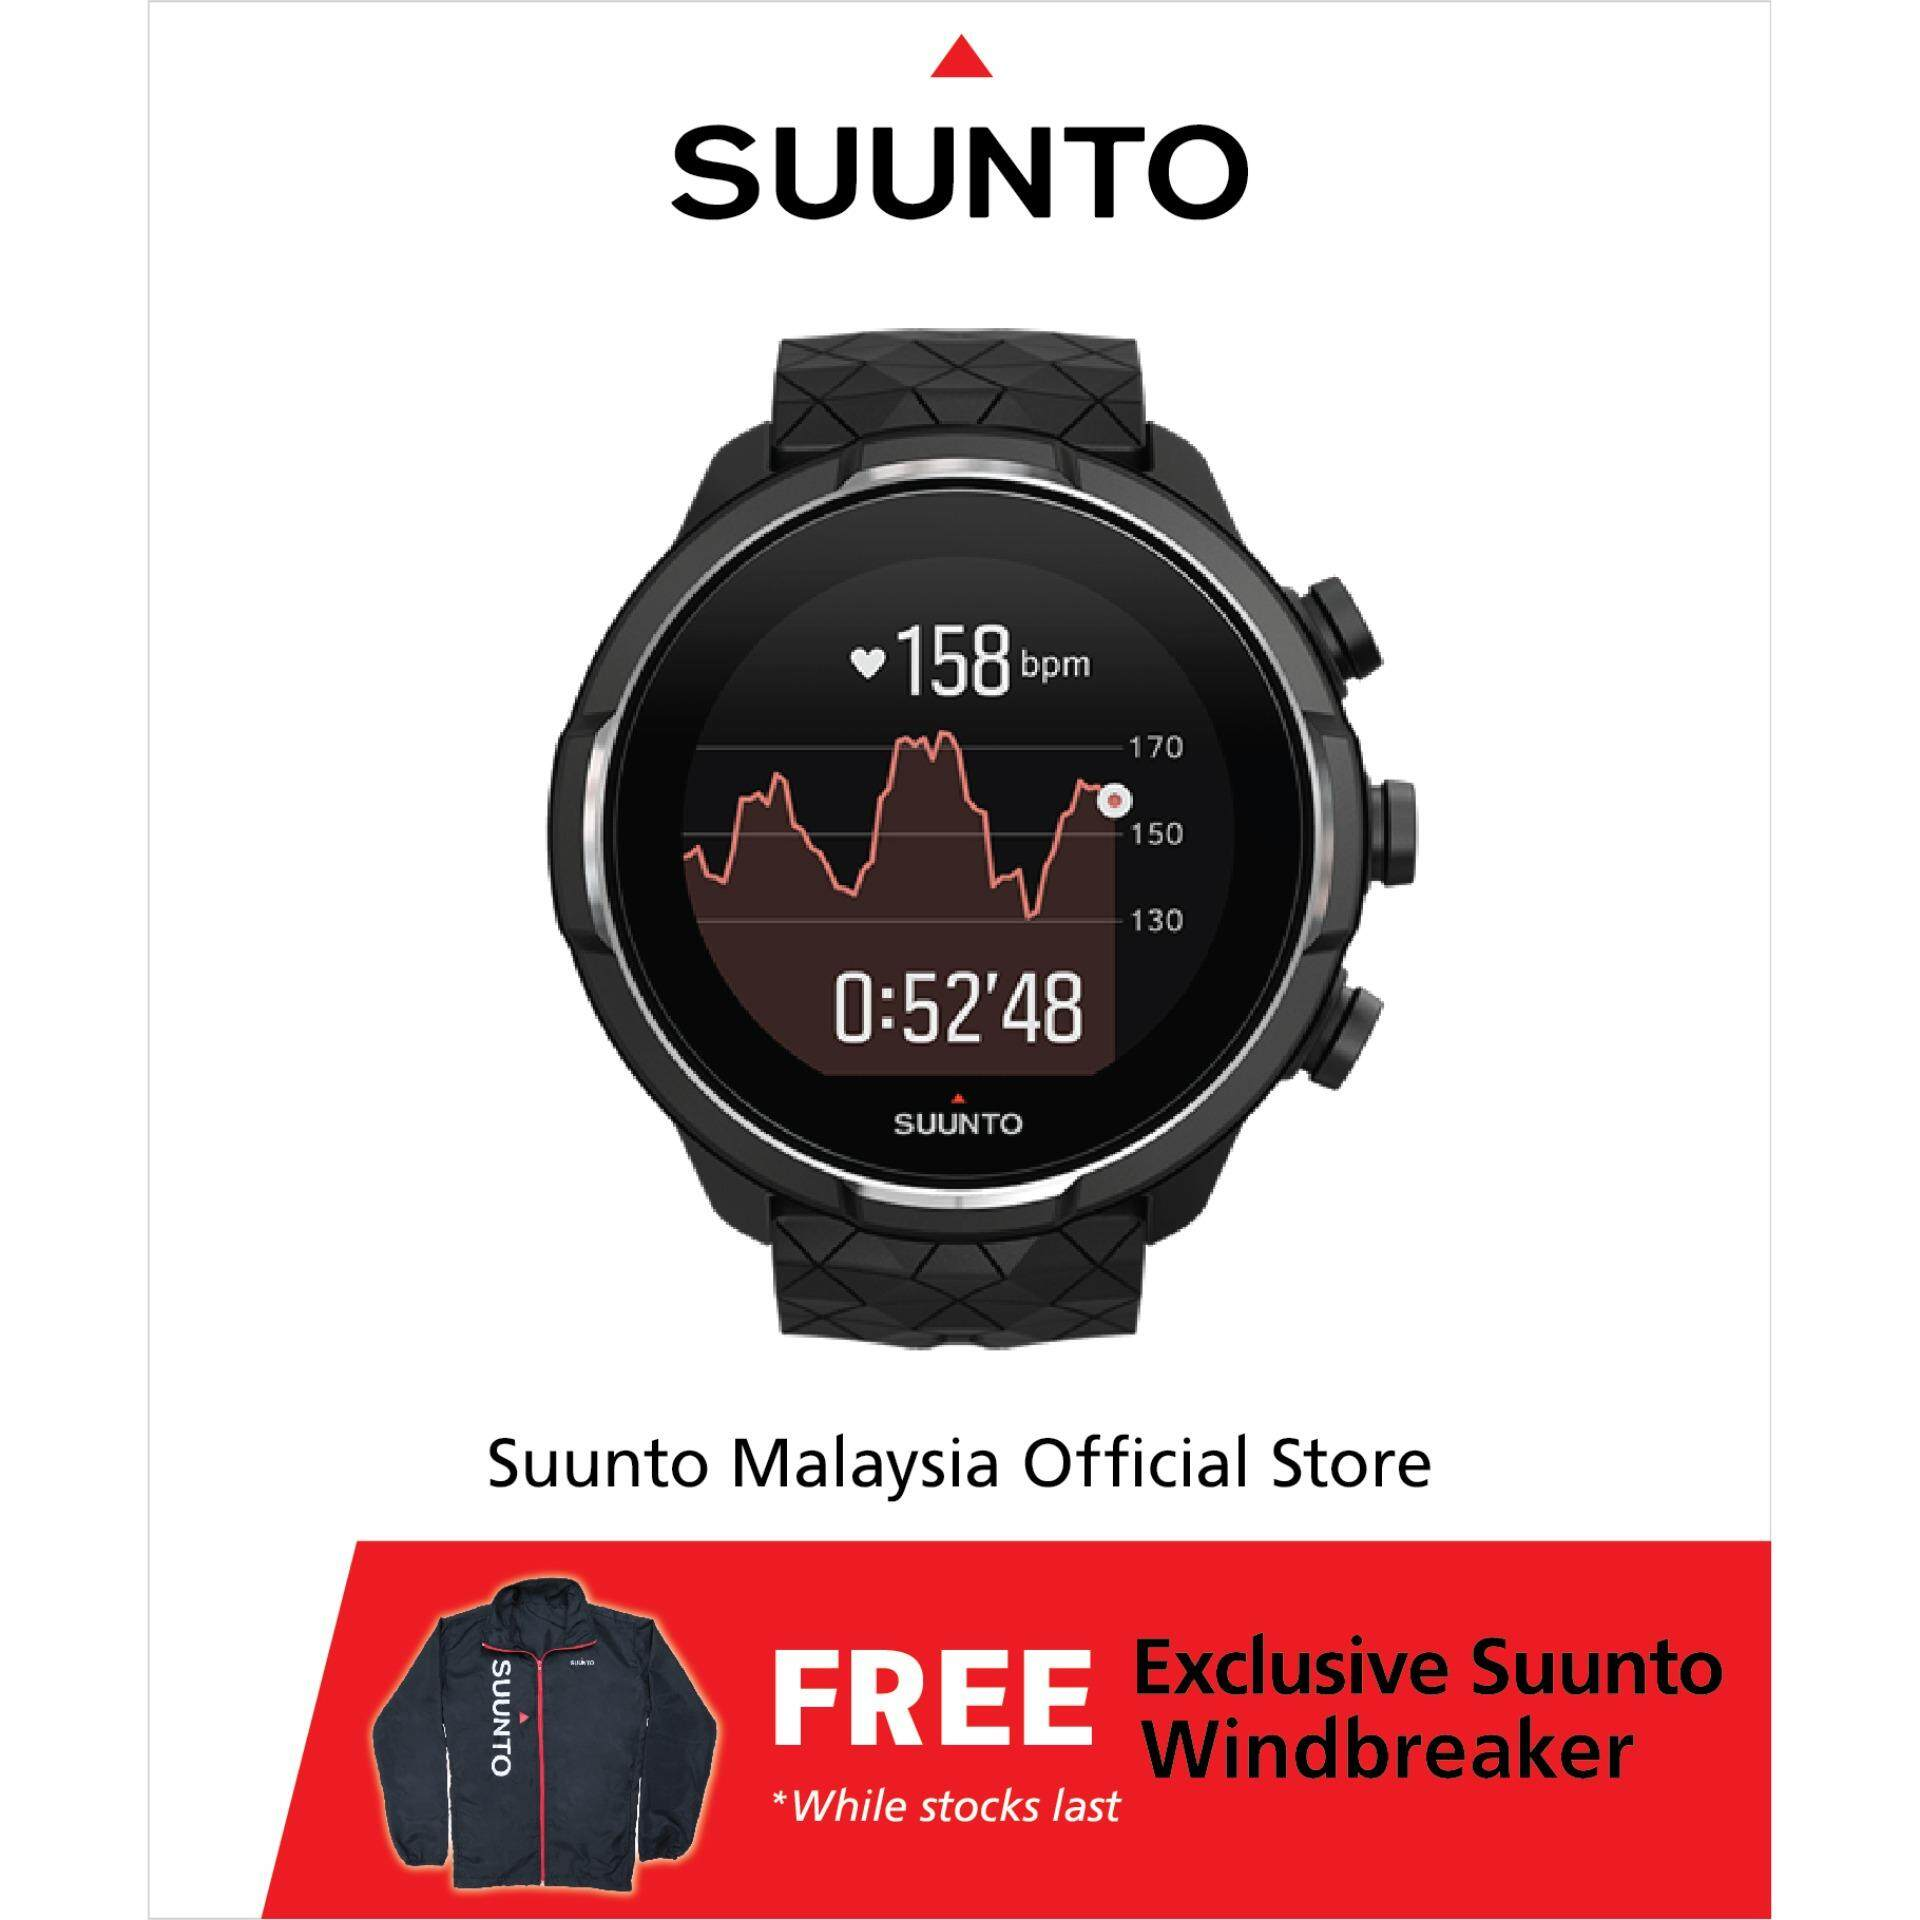 SUUNTO 9 BARO TITANIUM - The tough and durable multisport GPS watch for athletes demand the